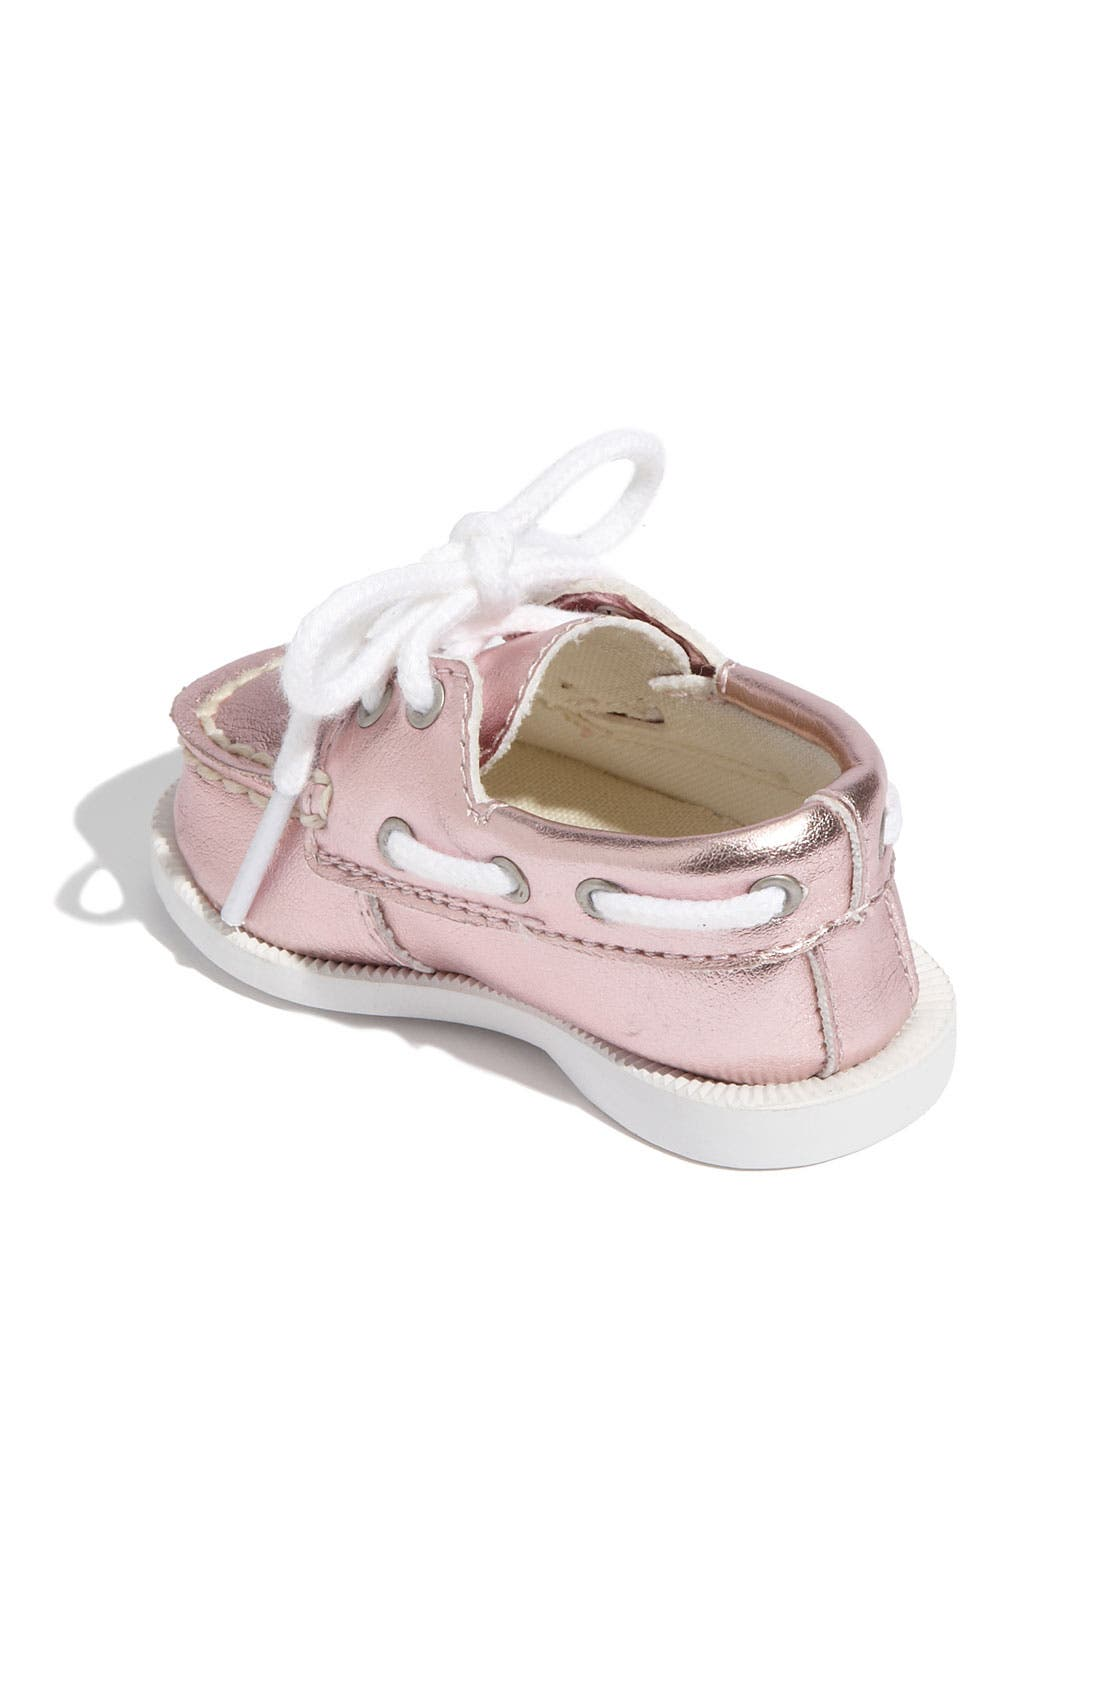 Alternate Image 2  - Sperry Top-Sider® 'Authentic Original' Crib Shoe (Baby)